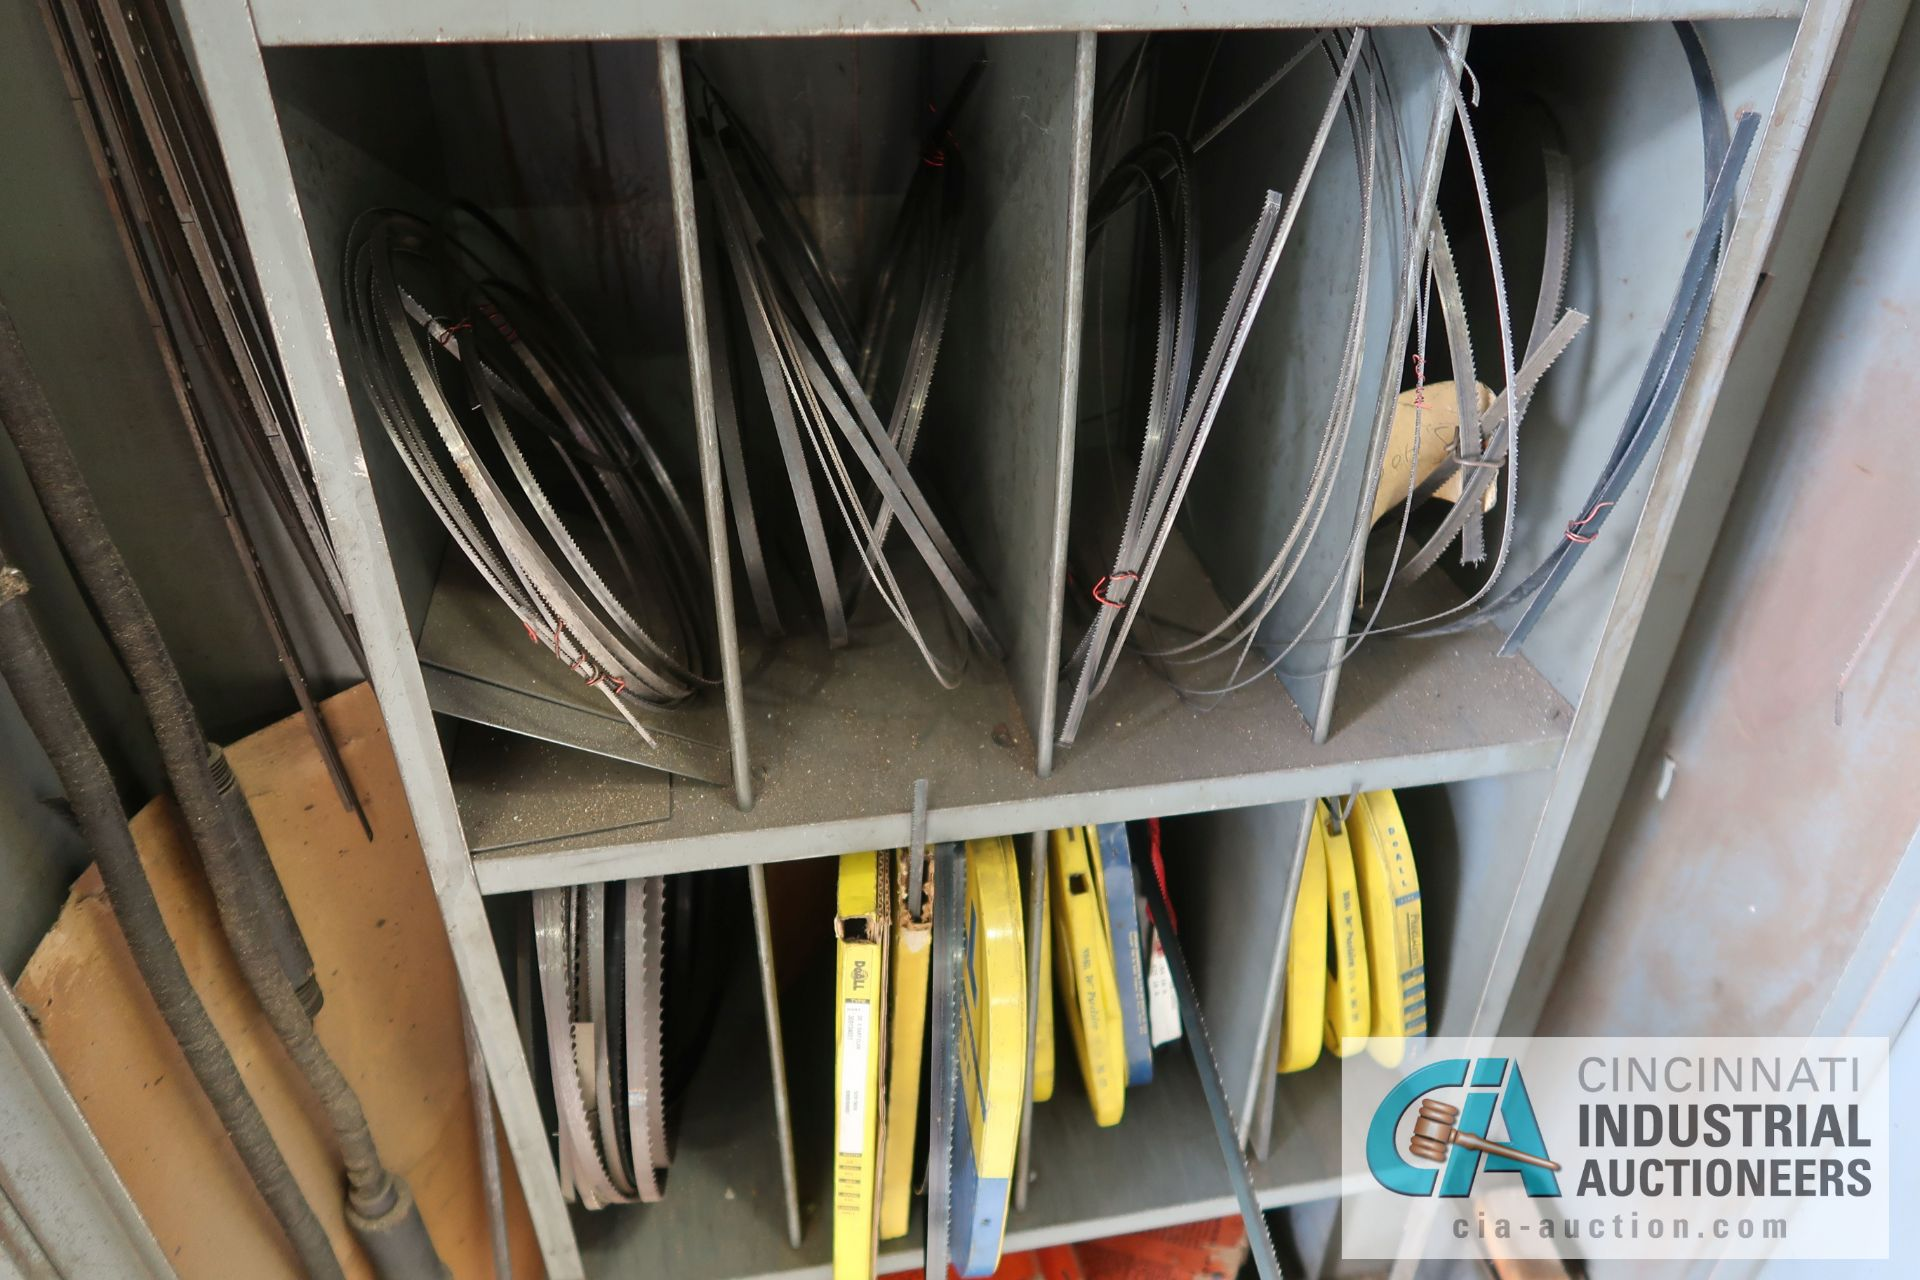 (LOT) MISCELLANEOUS SIZE BAND SAW BLADES WITH STORAGE CABINET - Image 4 of 6